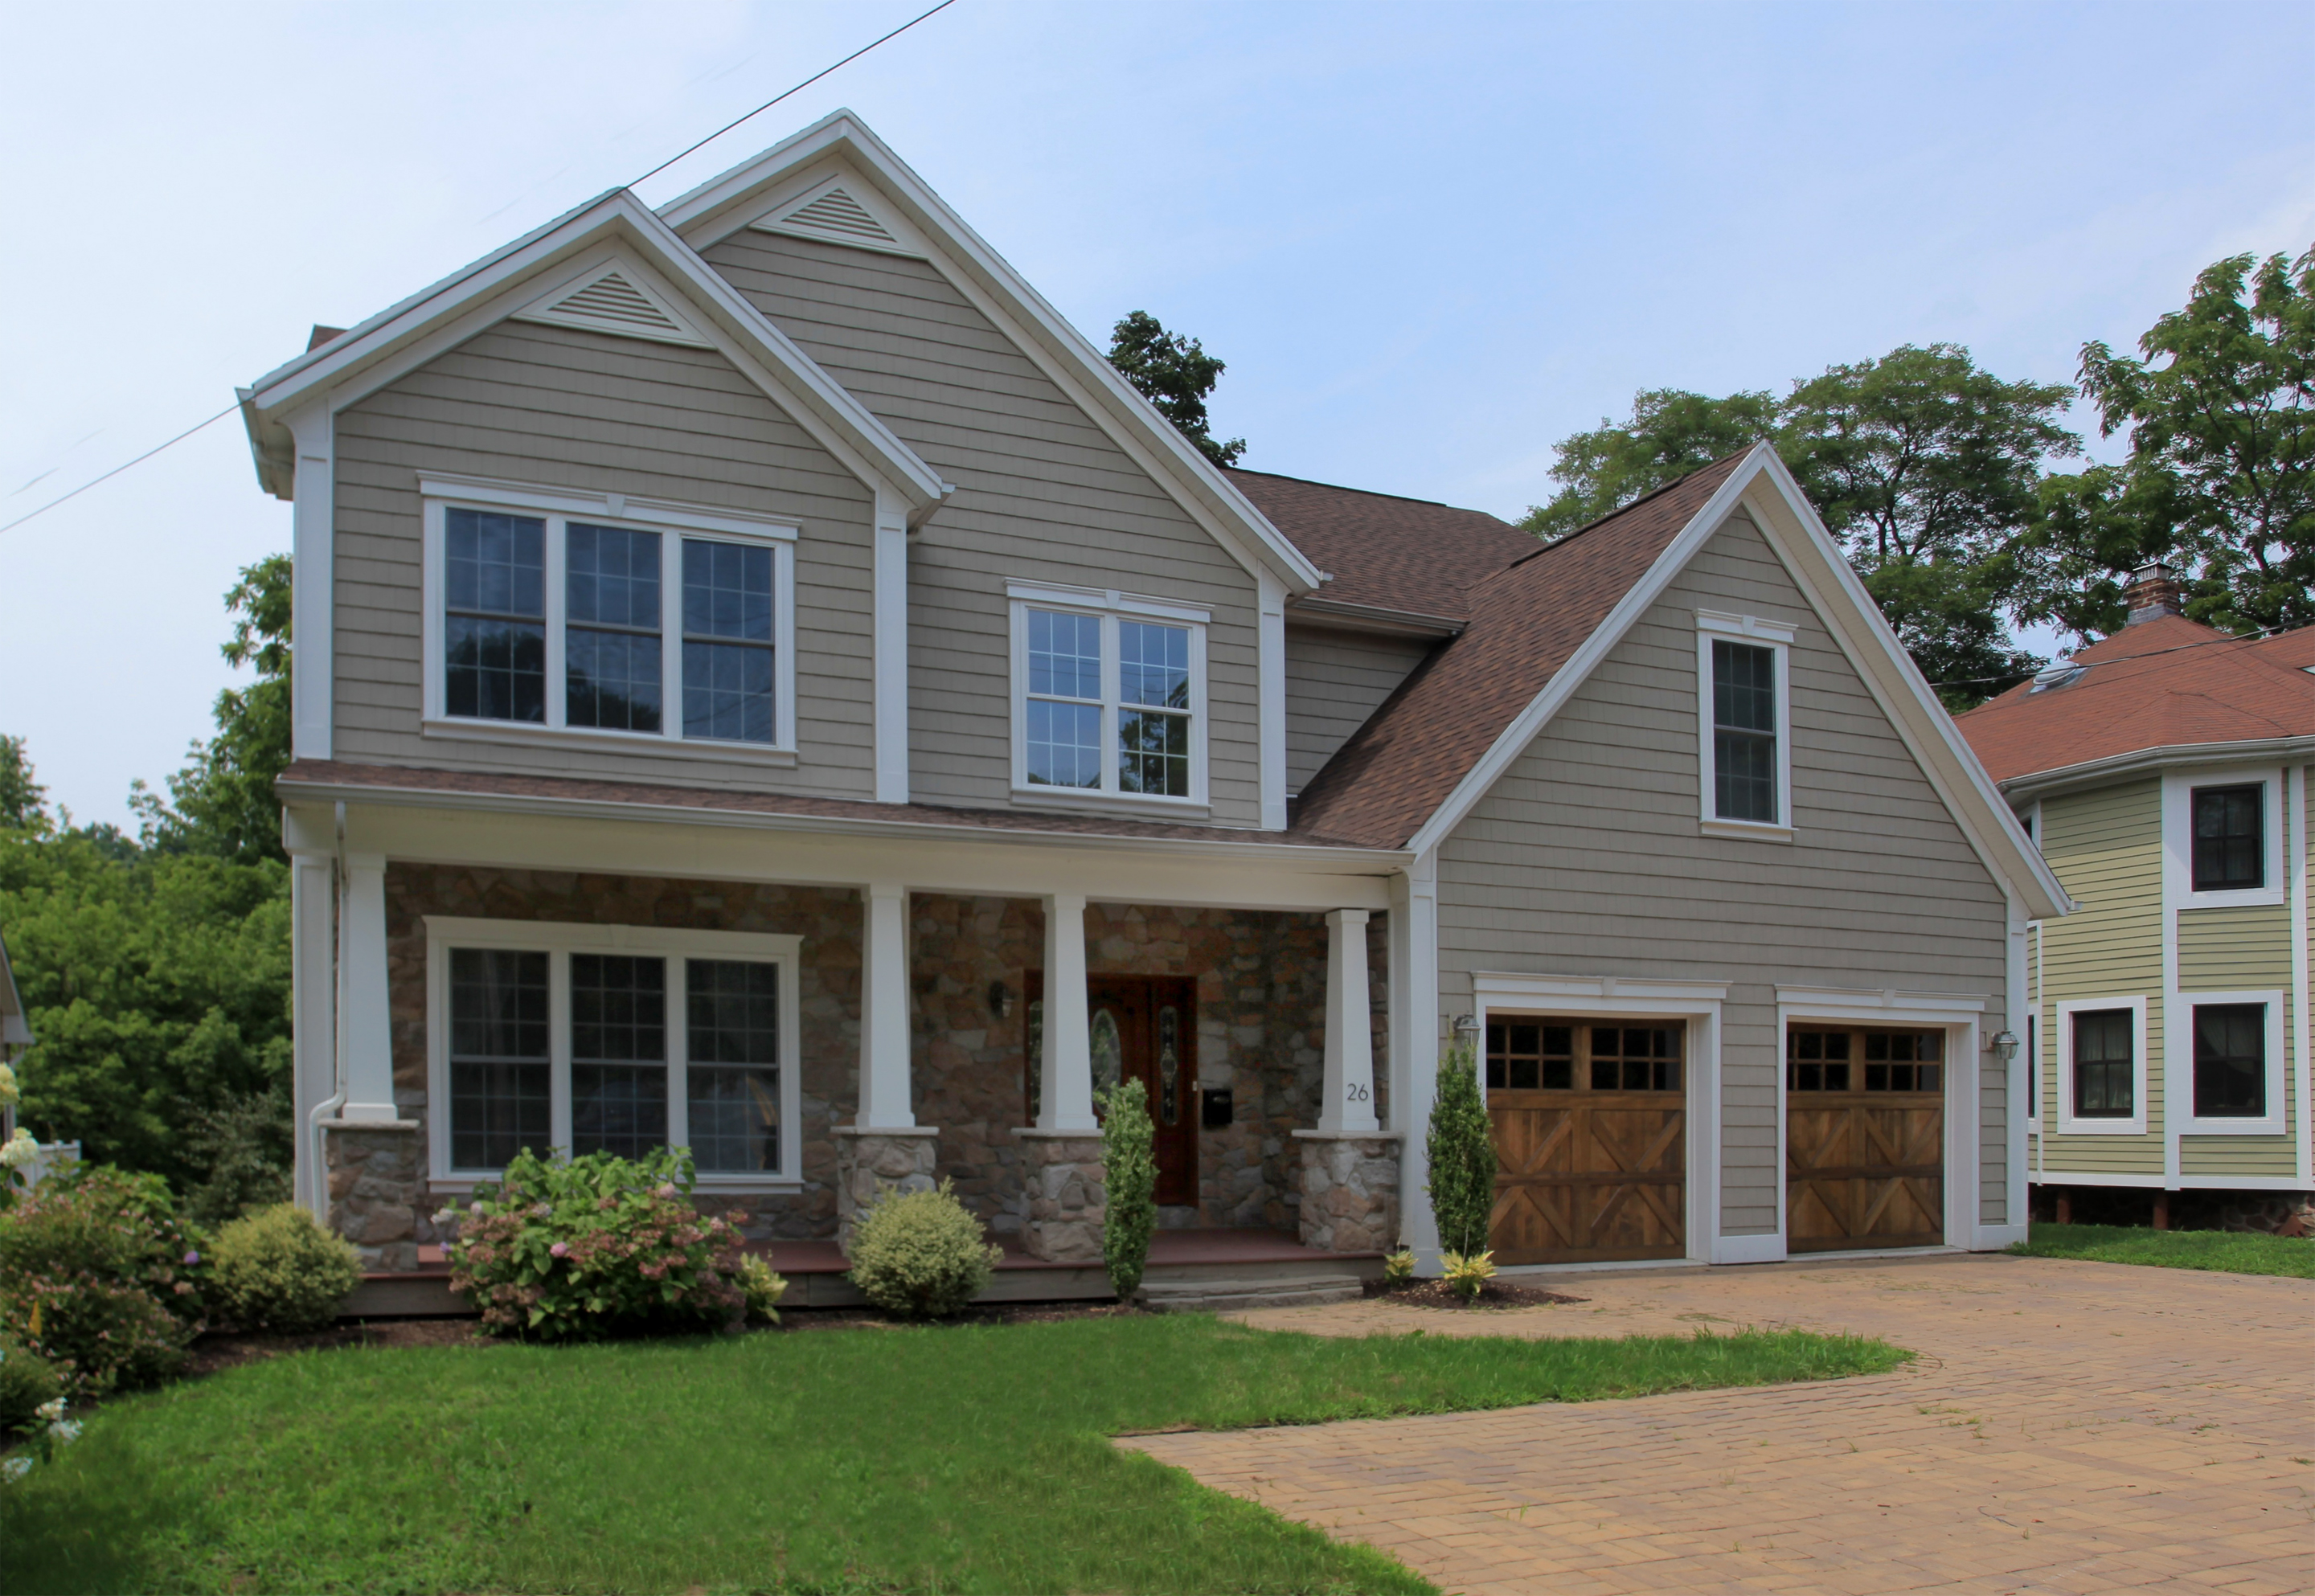 Single Family Home for Sale at Beautiful Custom Colonial 26 Anderson Hill Road Bernardsville, New Jersey 07924 United States